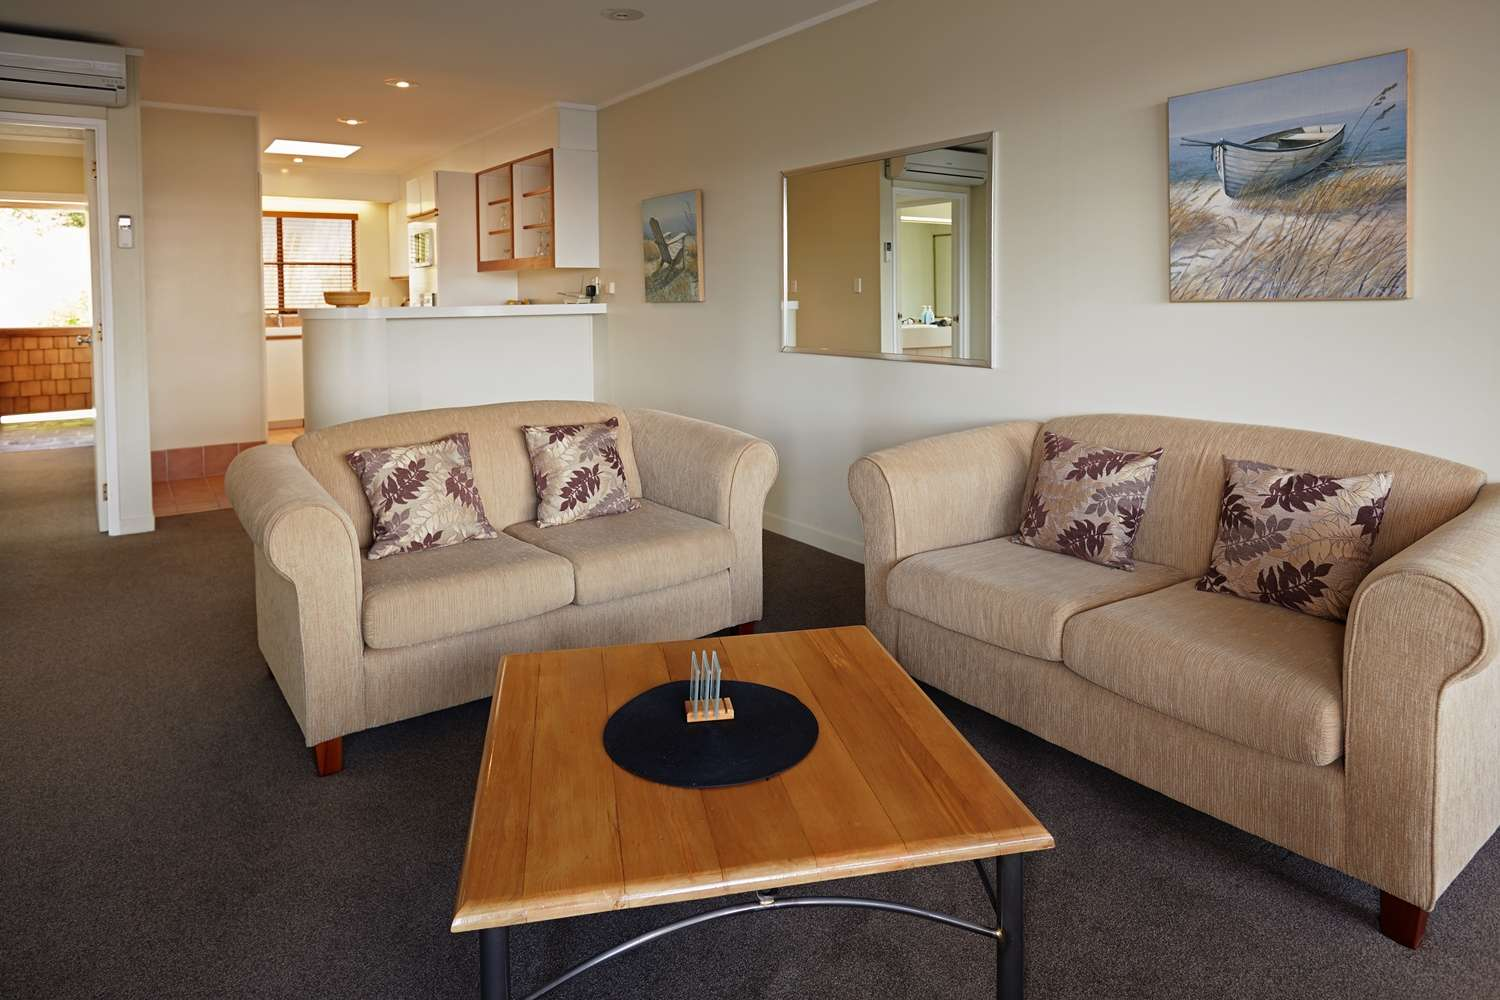 pioneer-apartments-paihia-accommodation-lounge-area.jpg